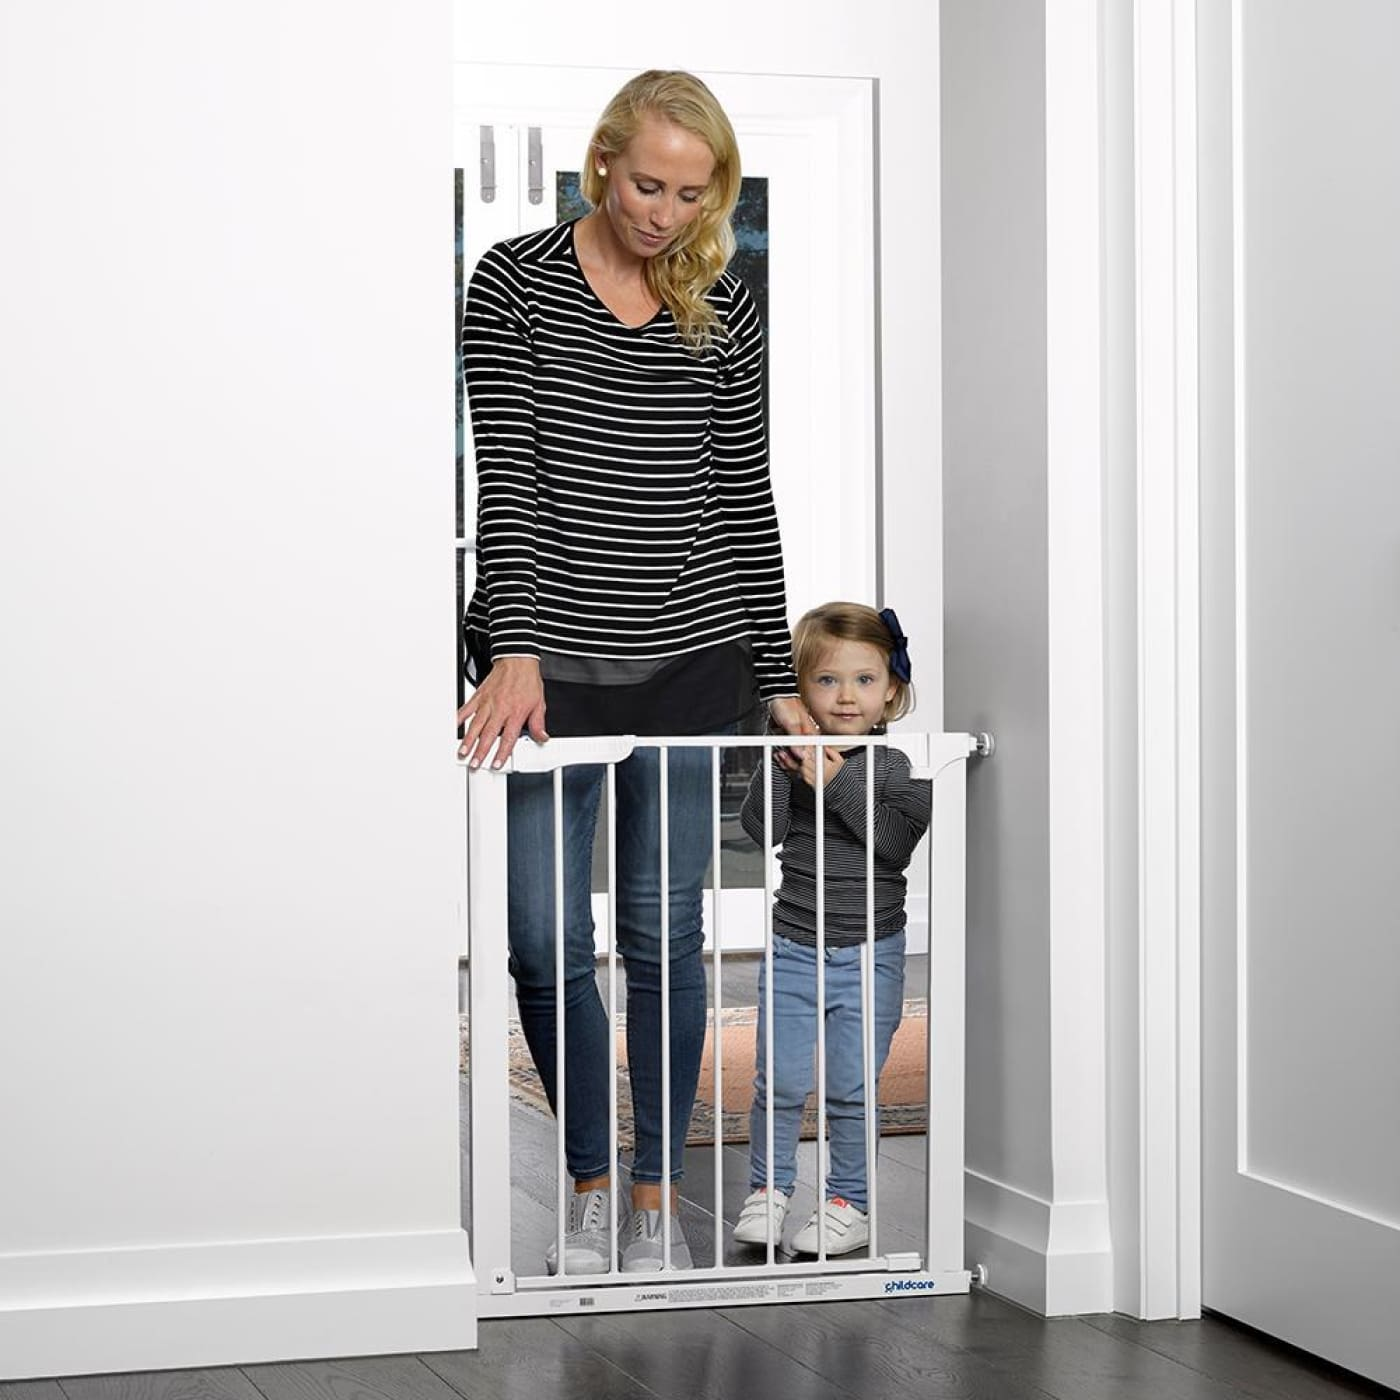 Childcare Assisted Auto Close Gate - White - White - HEALTH & HOME SAFETY - PLAY PENS/GATES/EXTENSIONS